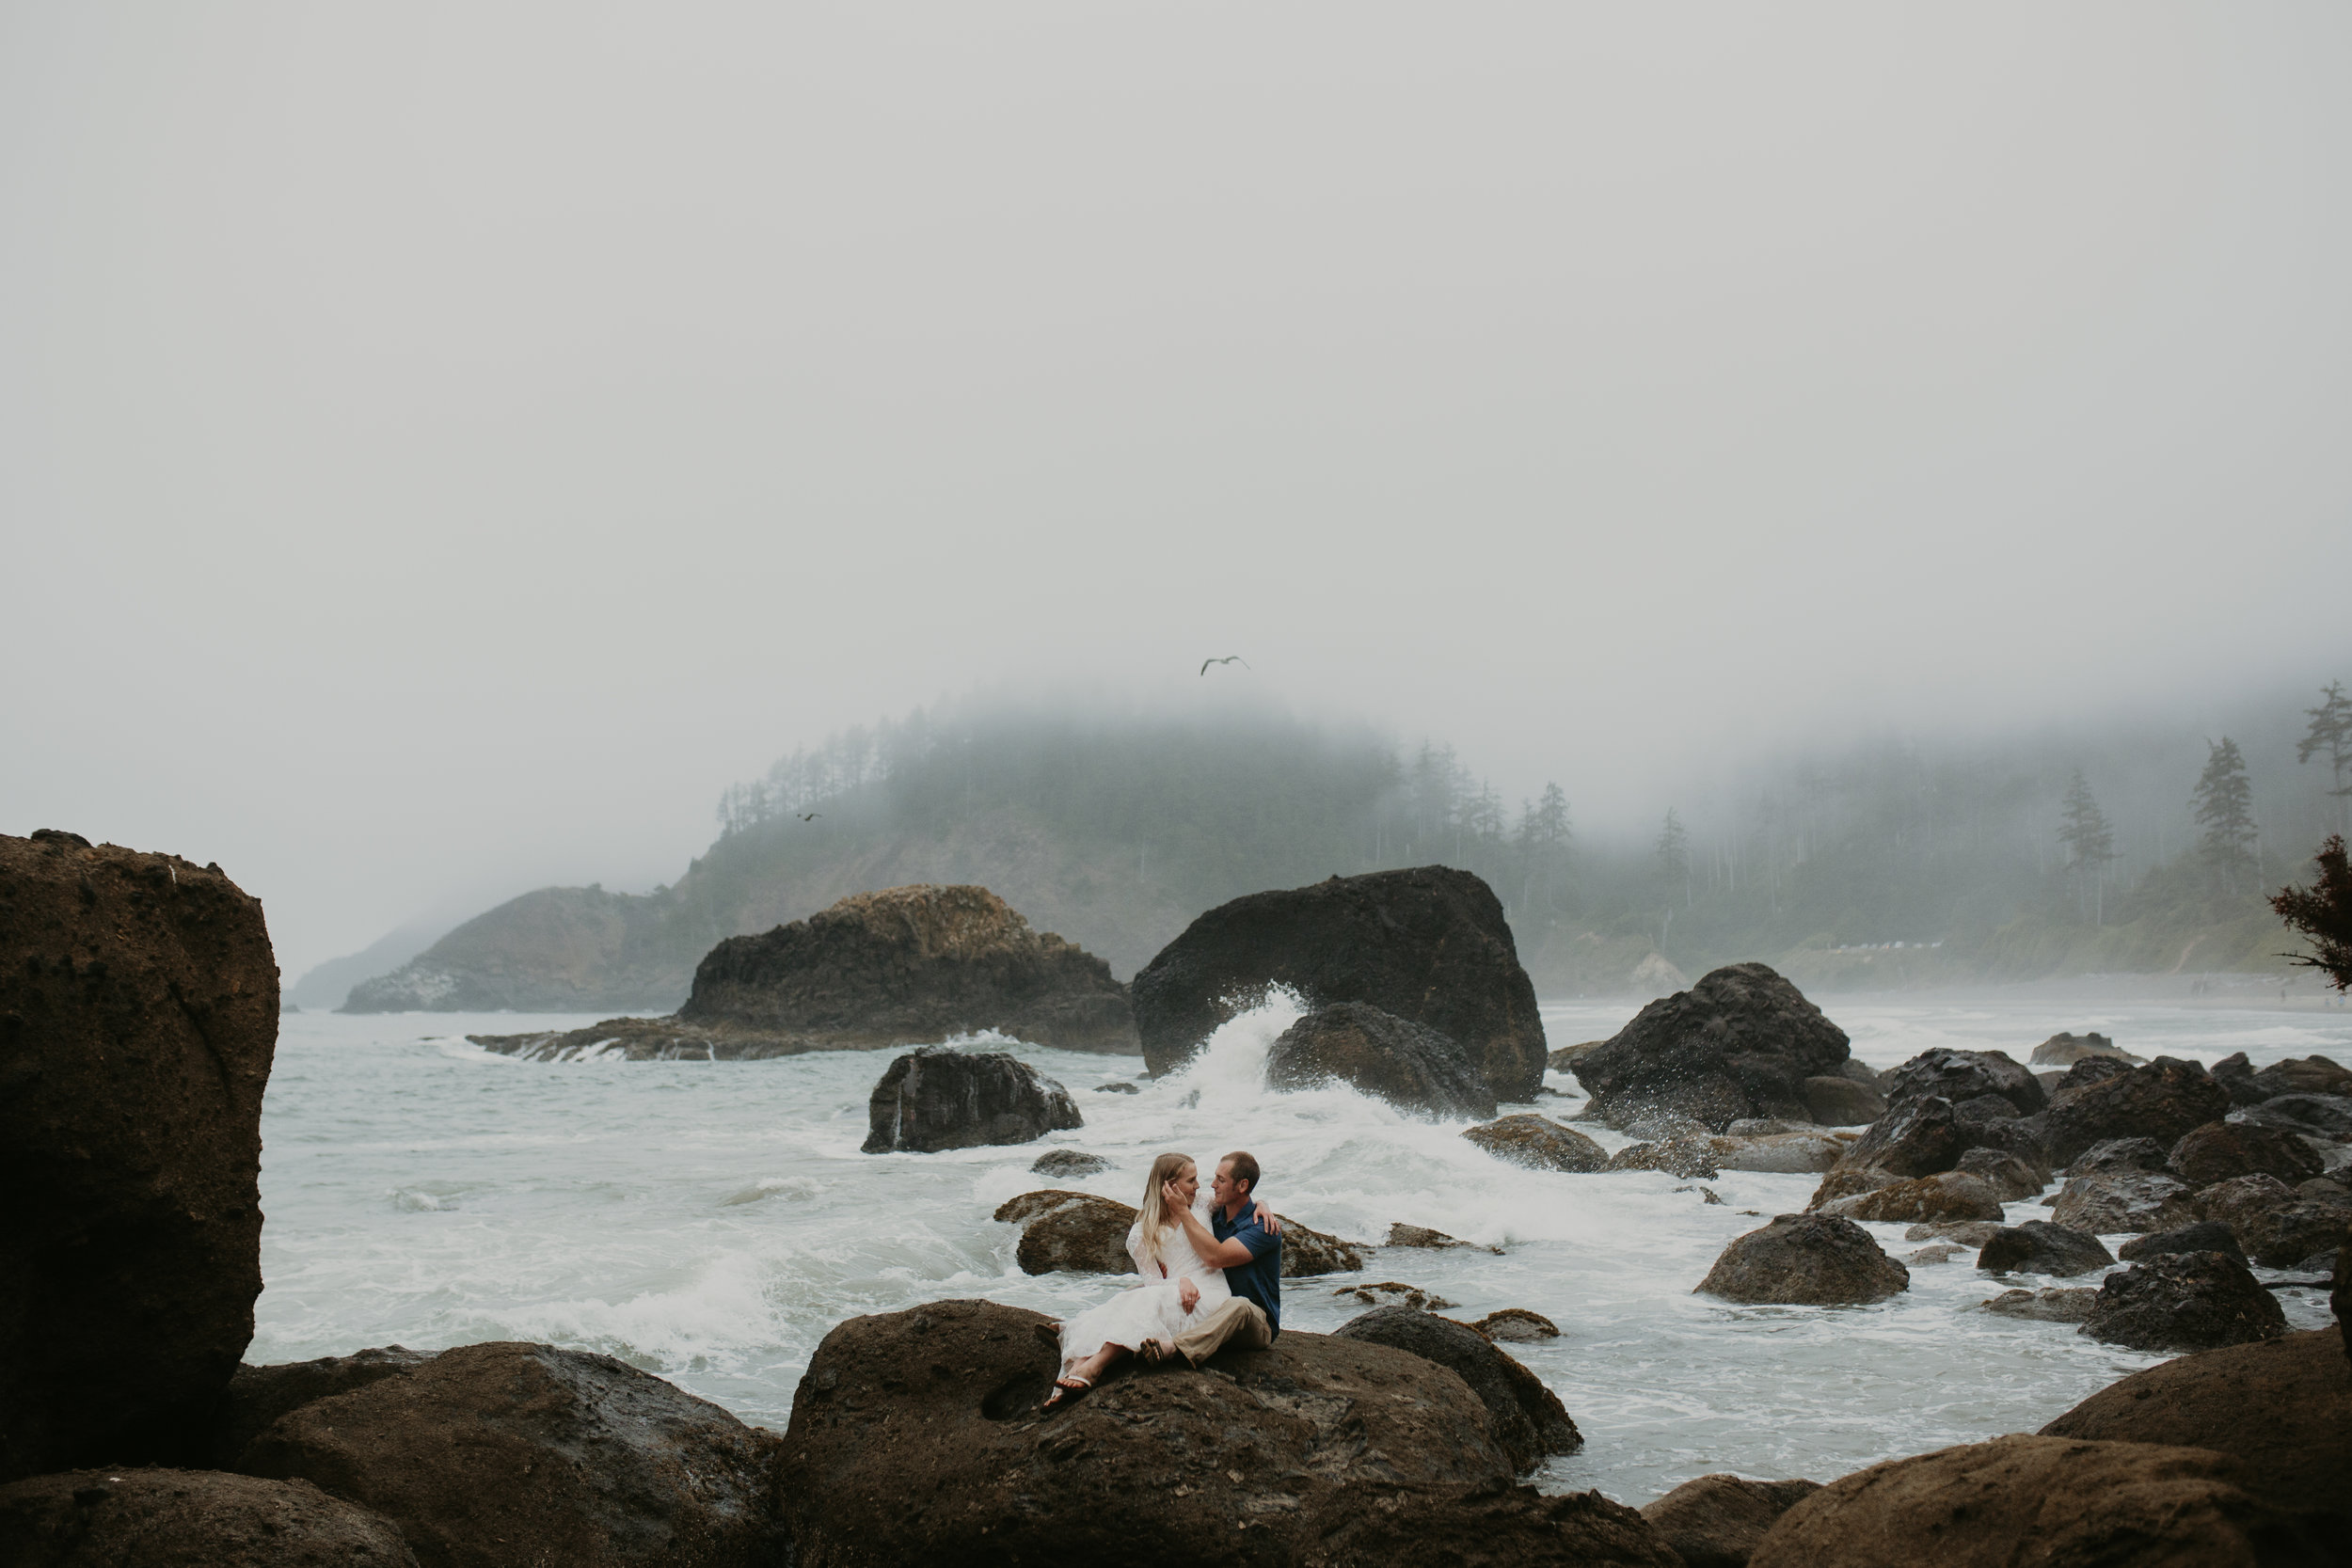 nicole-daacke-photography-oregon-coast-cannon-beach-indian-beach-ecola-state-park-adventurous-bridal-session-elopement-wedding-intimate-session-foggy-wedding-photographer-11.jpg